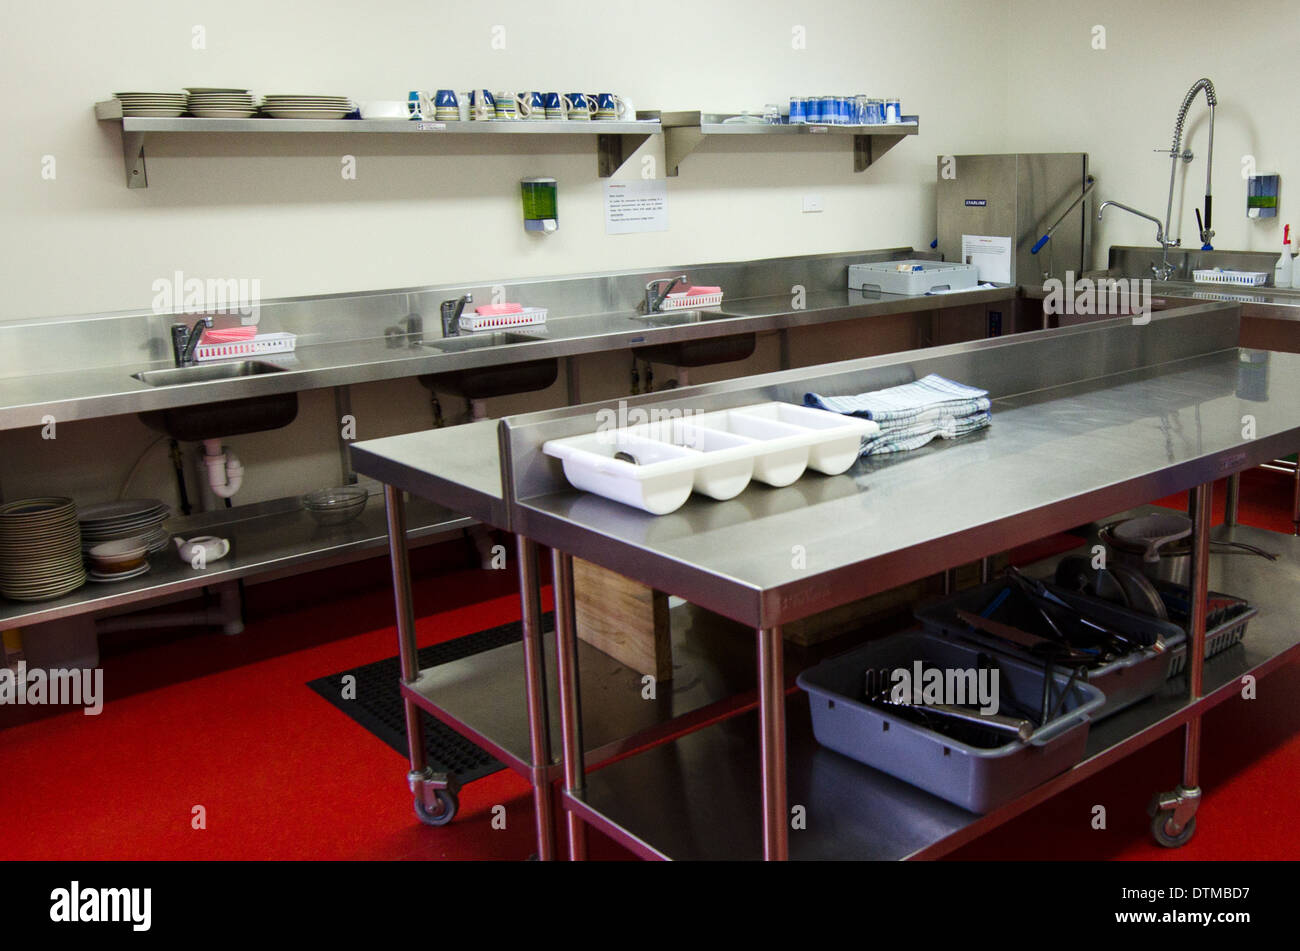 Work surface and kitchen equipment in professional kitchen - Stock Image